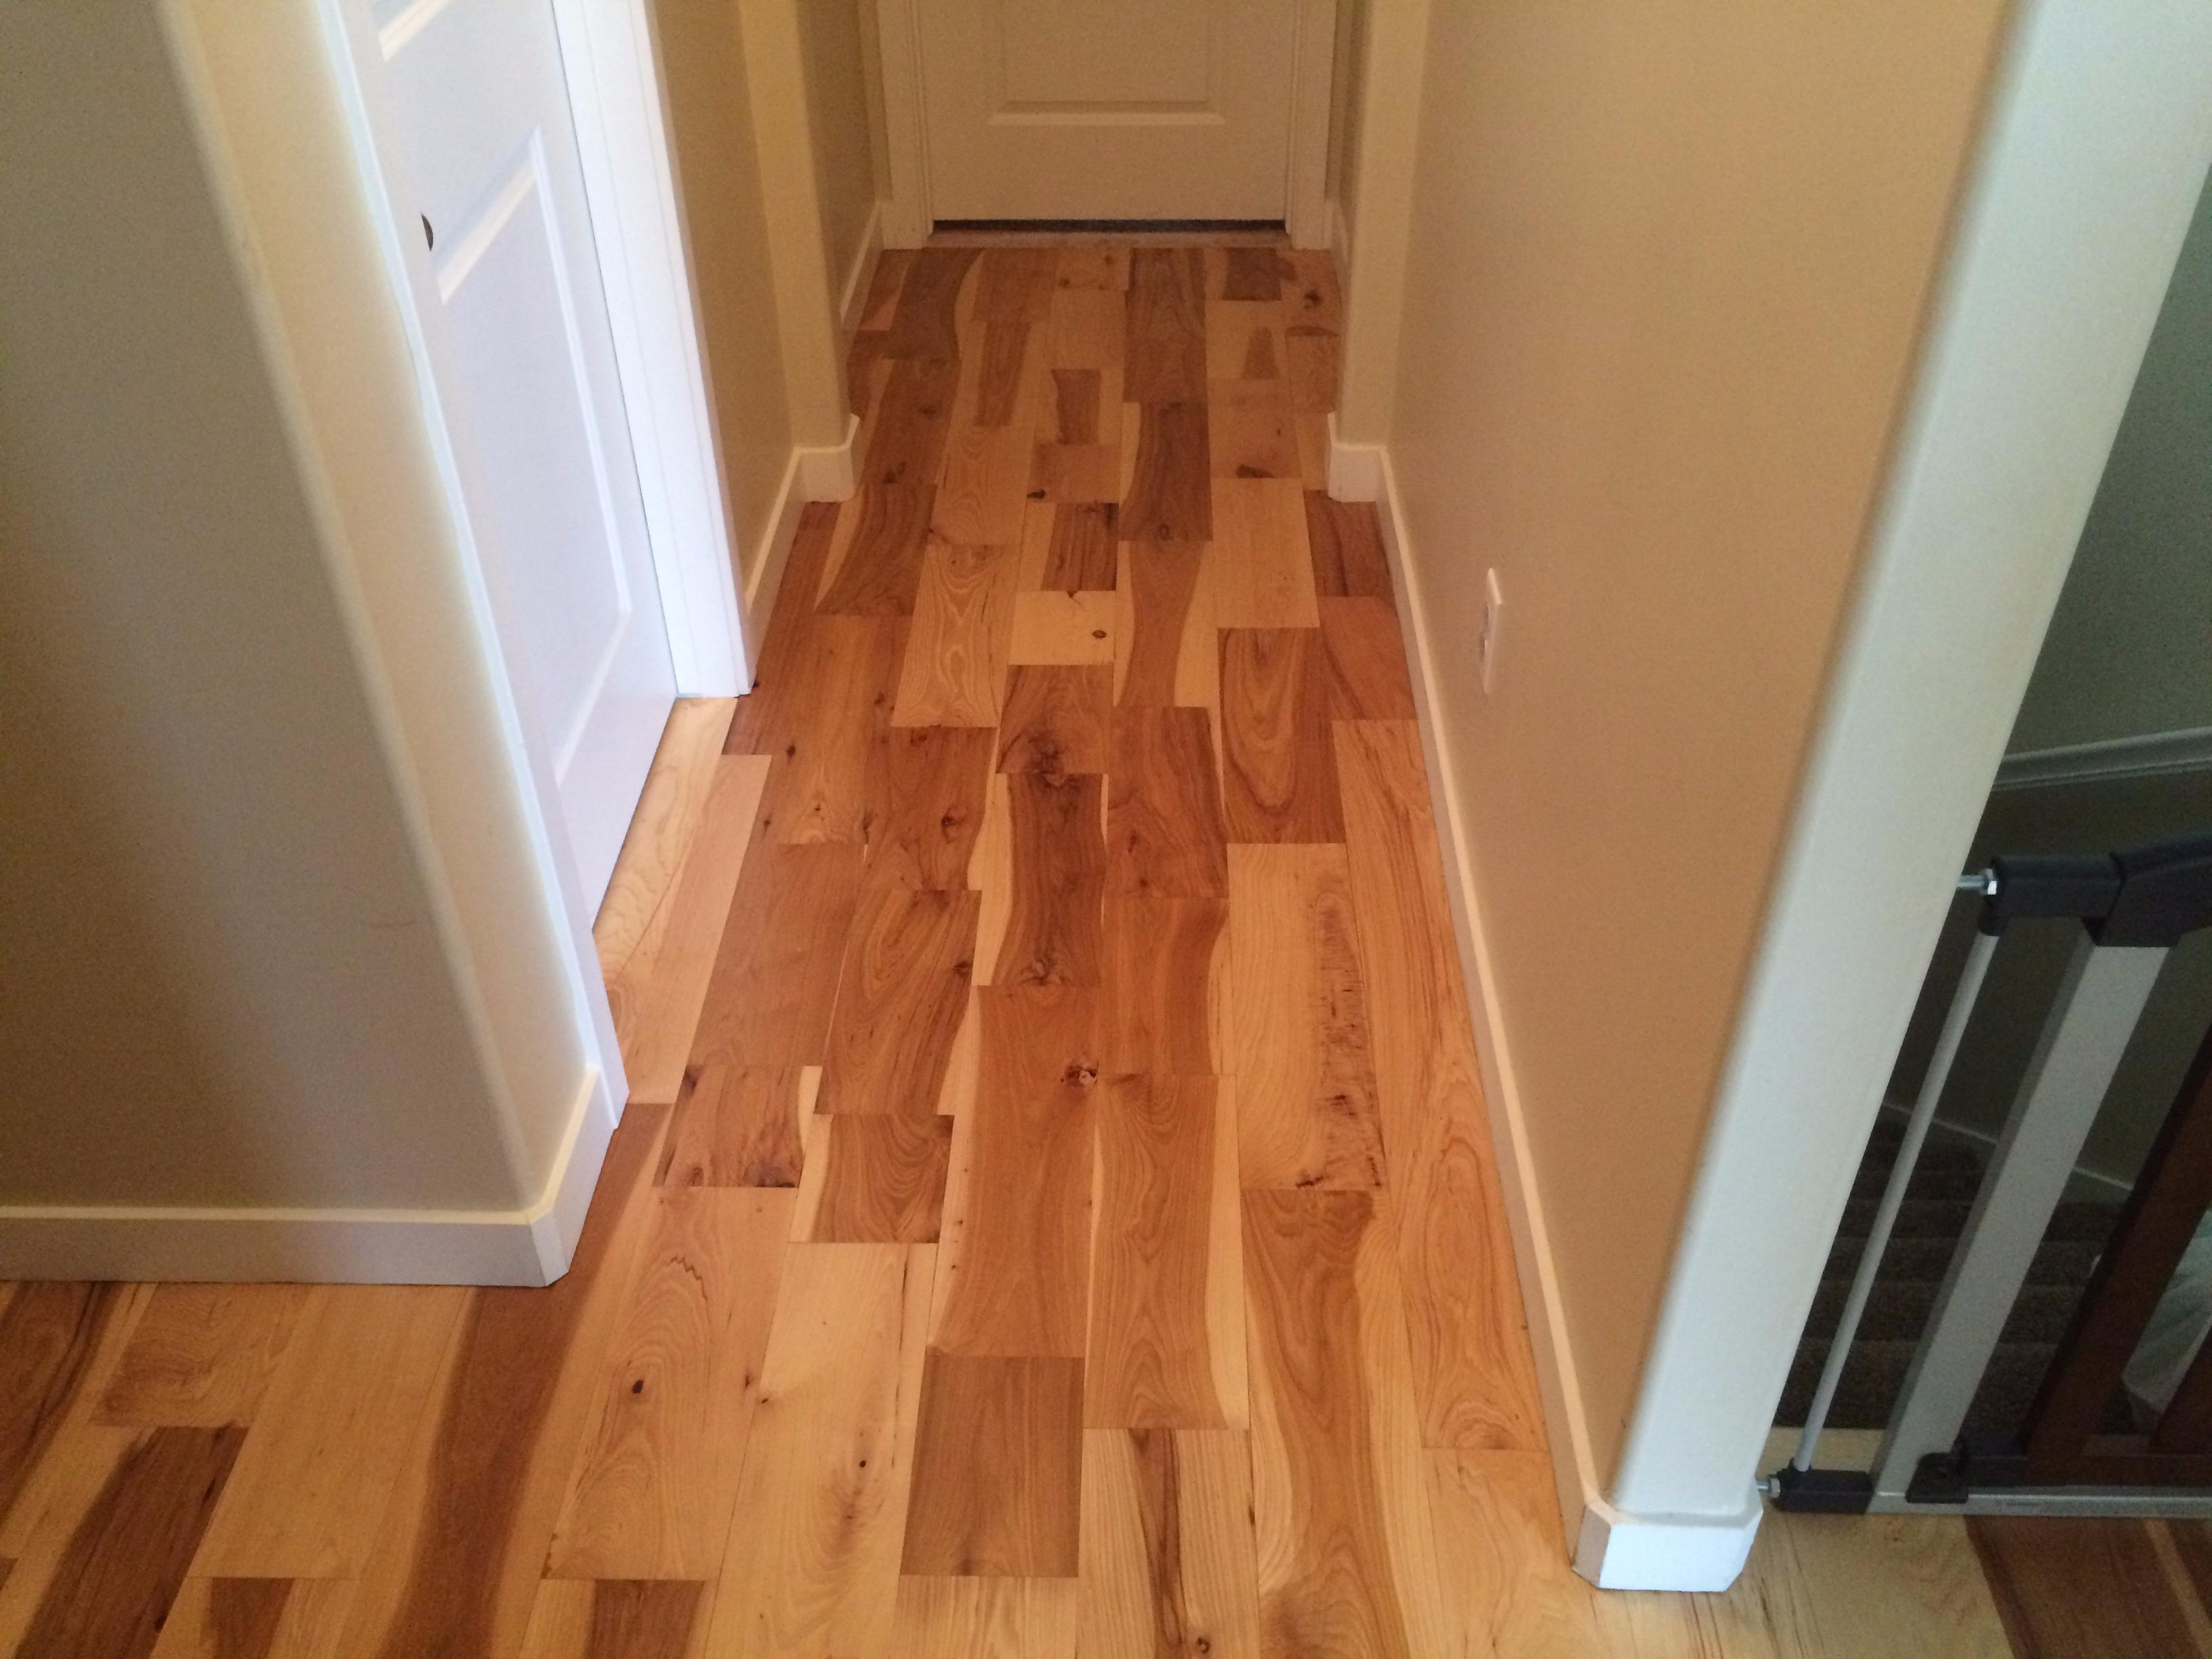 Lambert hardwood flooring coupons near me in ogden 8coupons for Hardwood flooring places near me